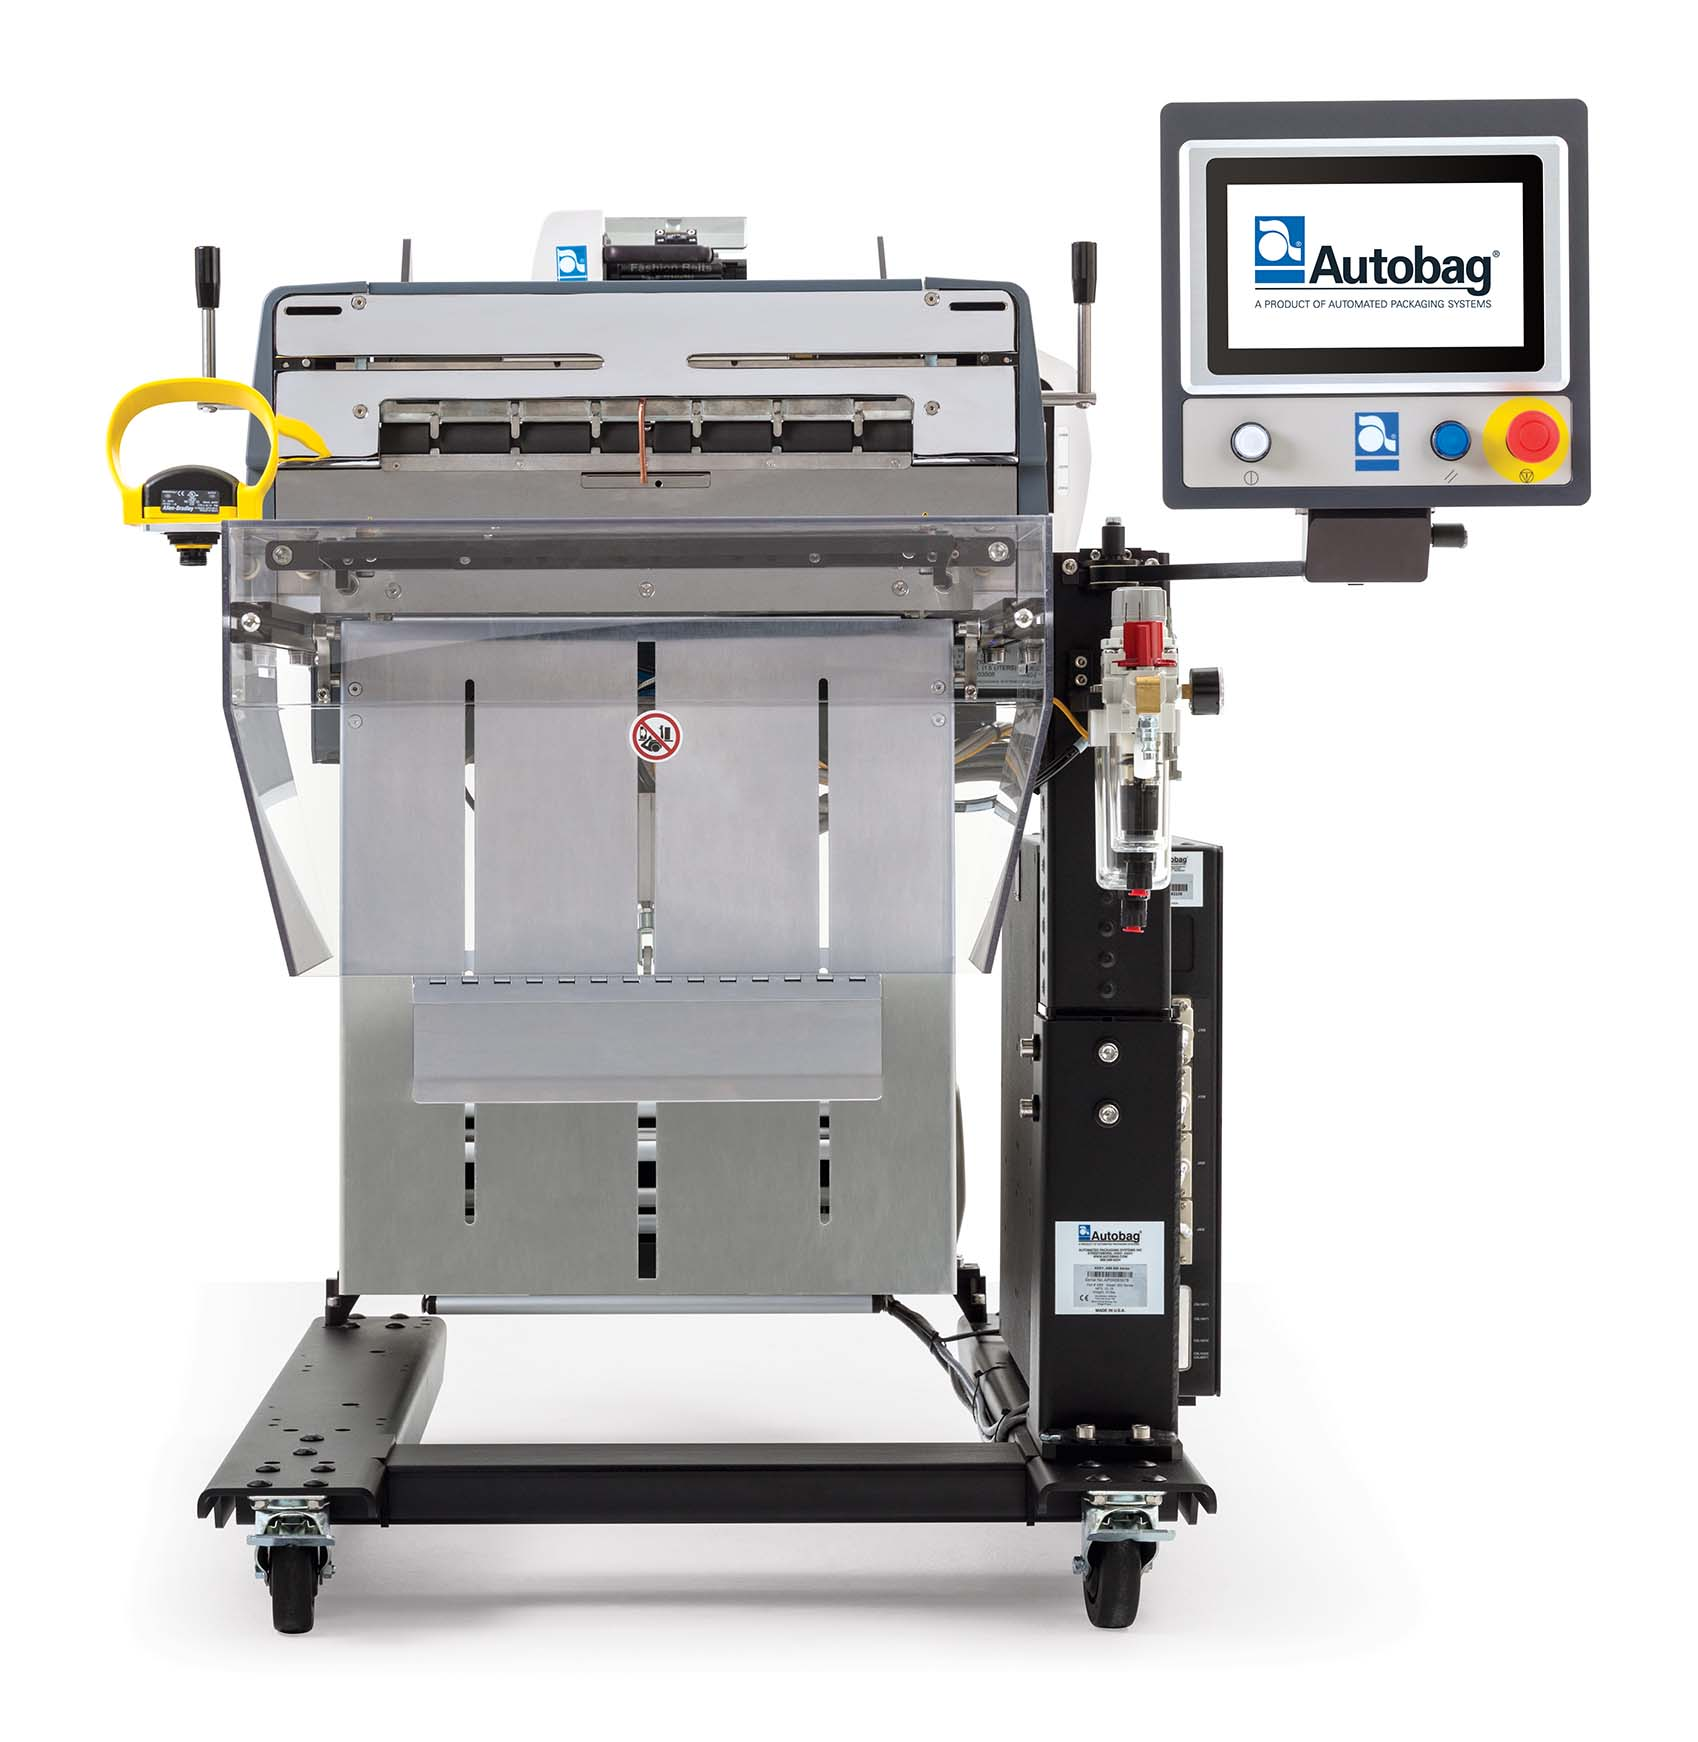 AutoLabel 600 high resolution inline printer front view